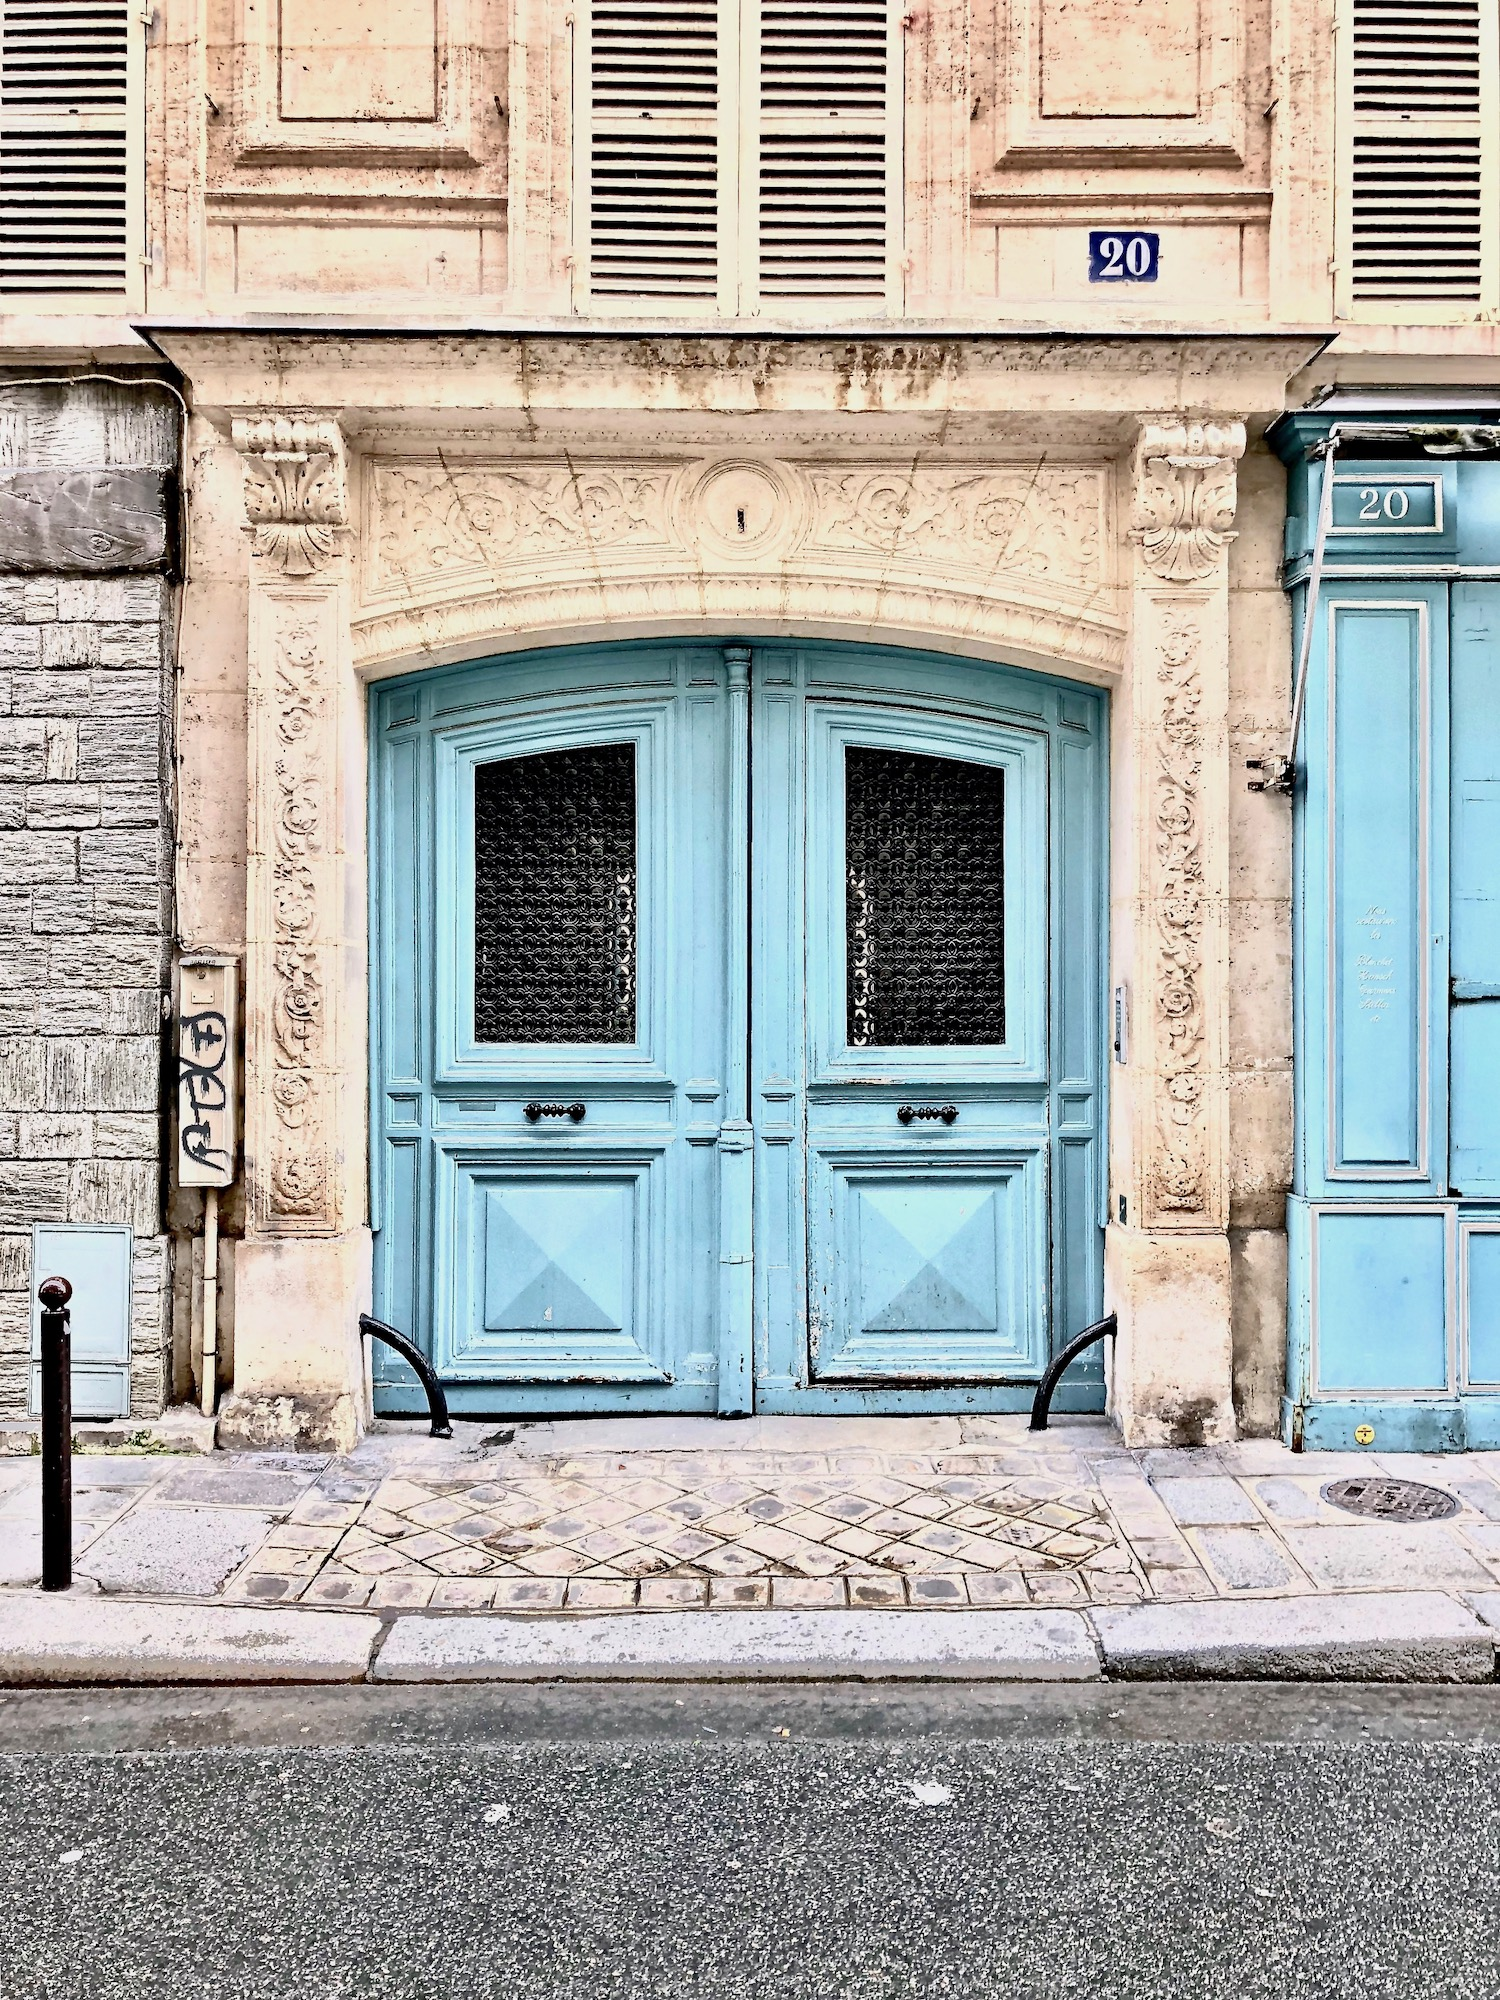 Blue Door in Paris. I can help you find all of the best and most photogenic doors in Paris through my bespoke travel planning services.